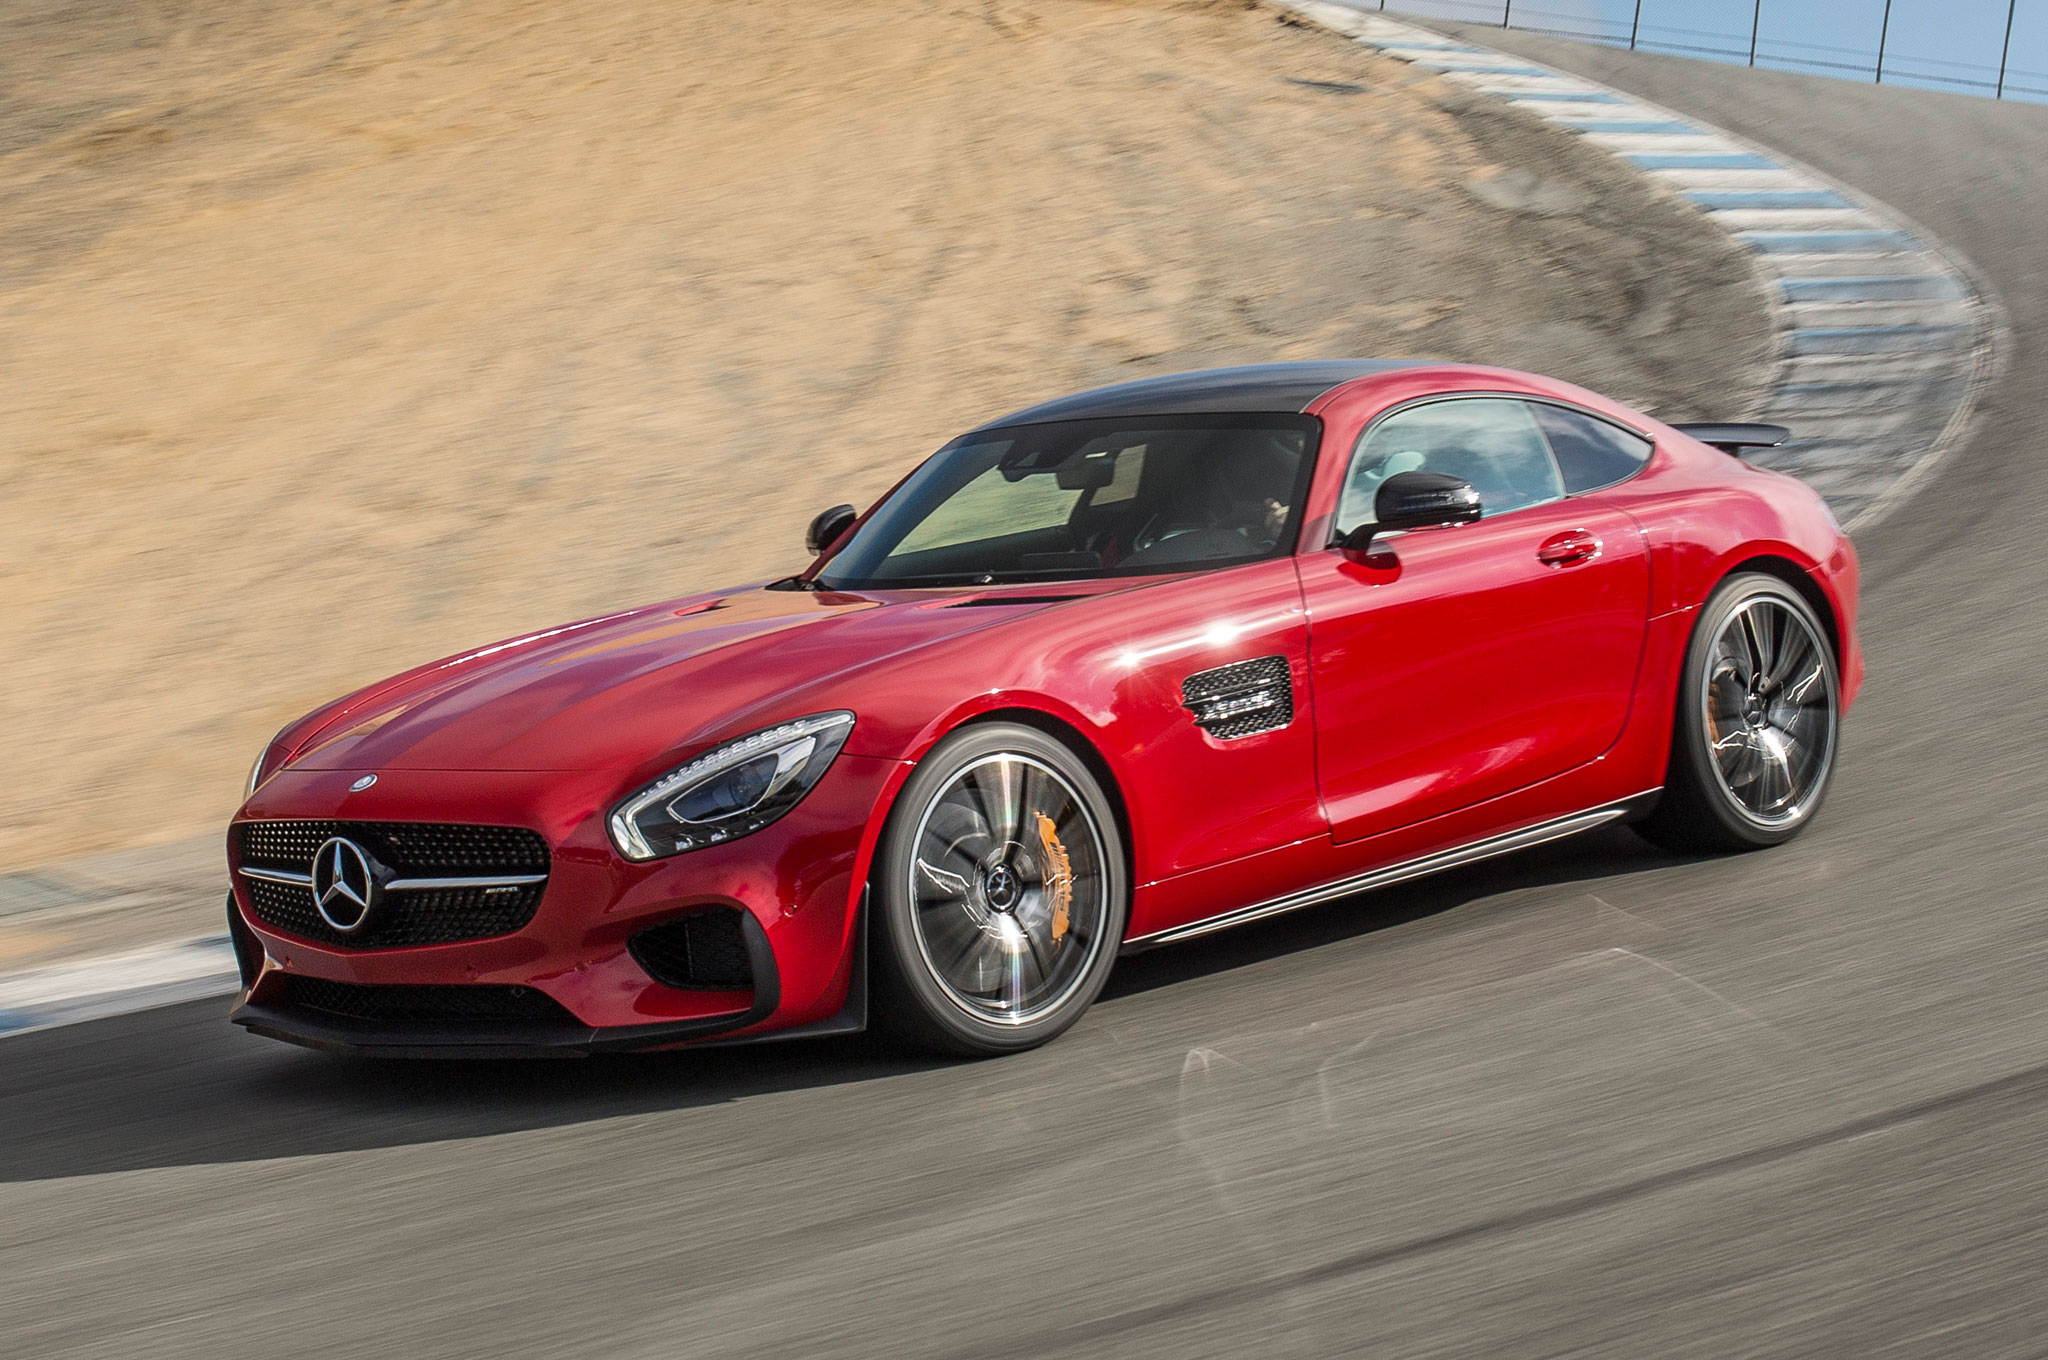 http://st.automobilemag.com/uploads/sites/11/2014/11/2016-Mercedes-AMG-GT-S-Edition-1-front-driver-profile-in-motion.jpg